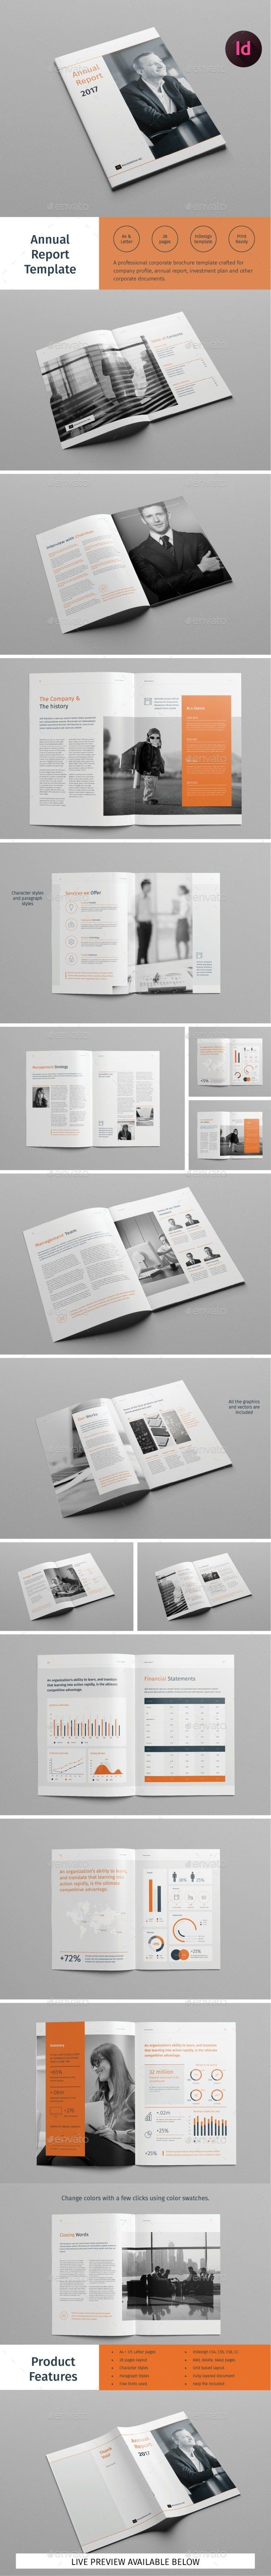 Annual Report Template InDesign INDD. Download here: http://graphicriver.net/item/annual-report/16179036?ref=ksioks